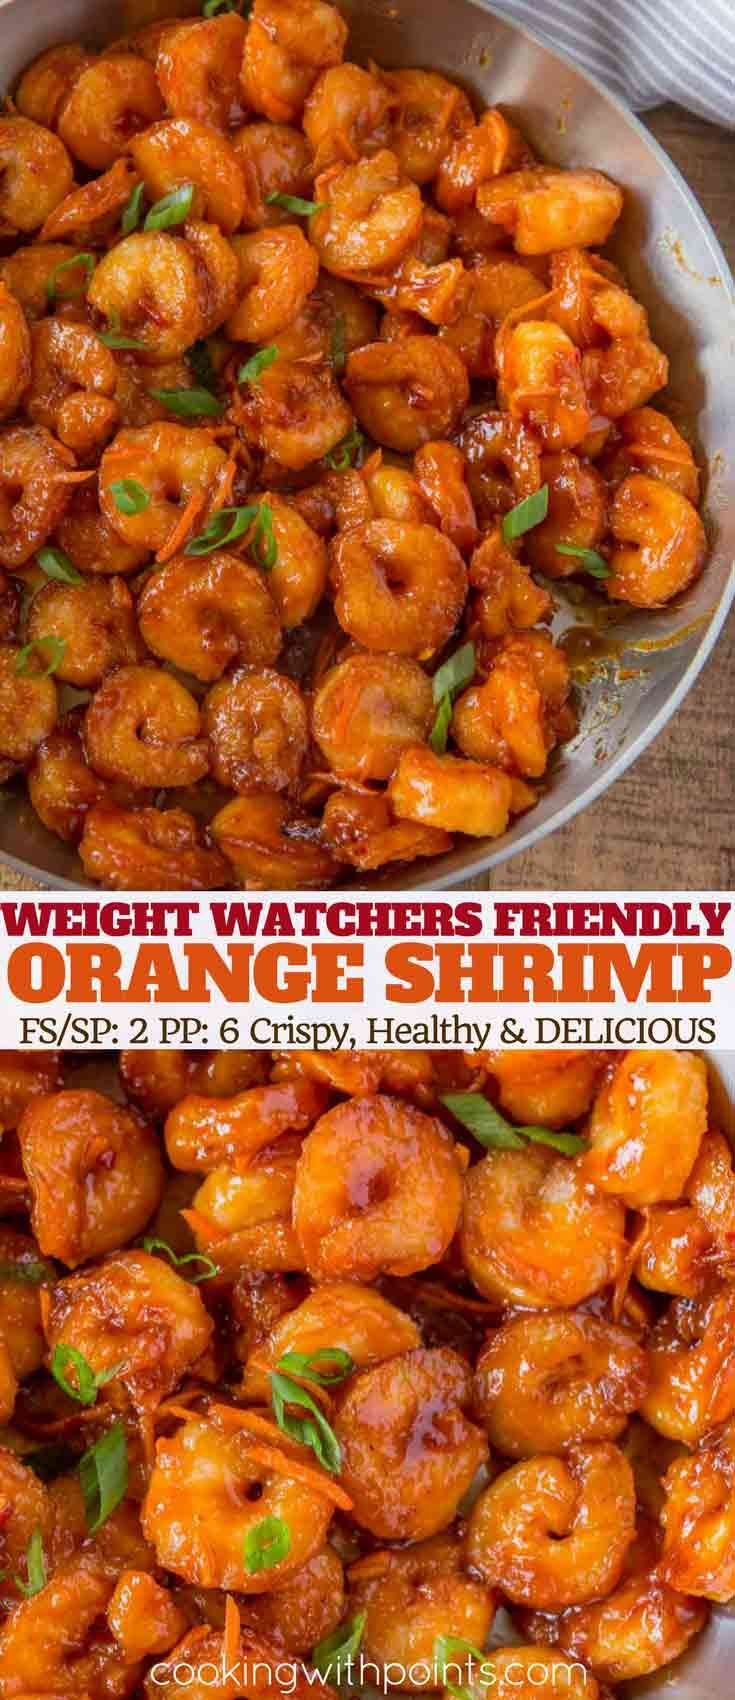 Skinny Chinese Orange Shrimp Cooking Made Healthy Recipe Food Healthy Recipes Healthy